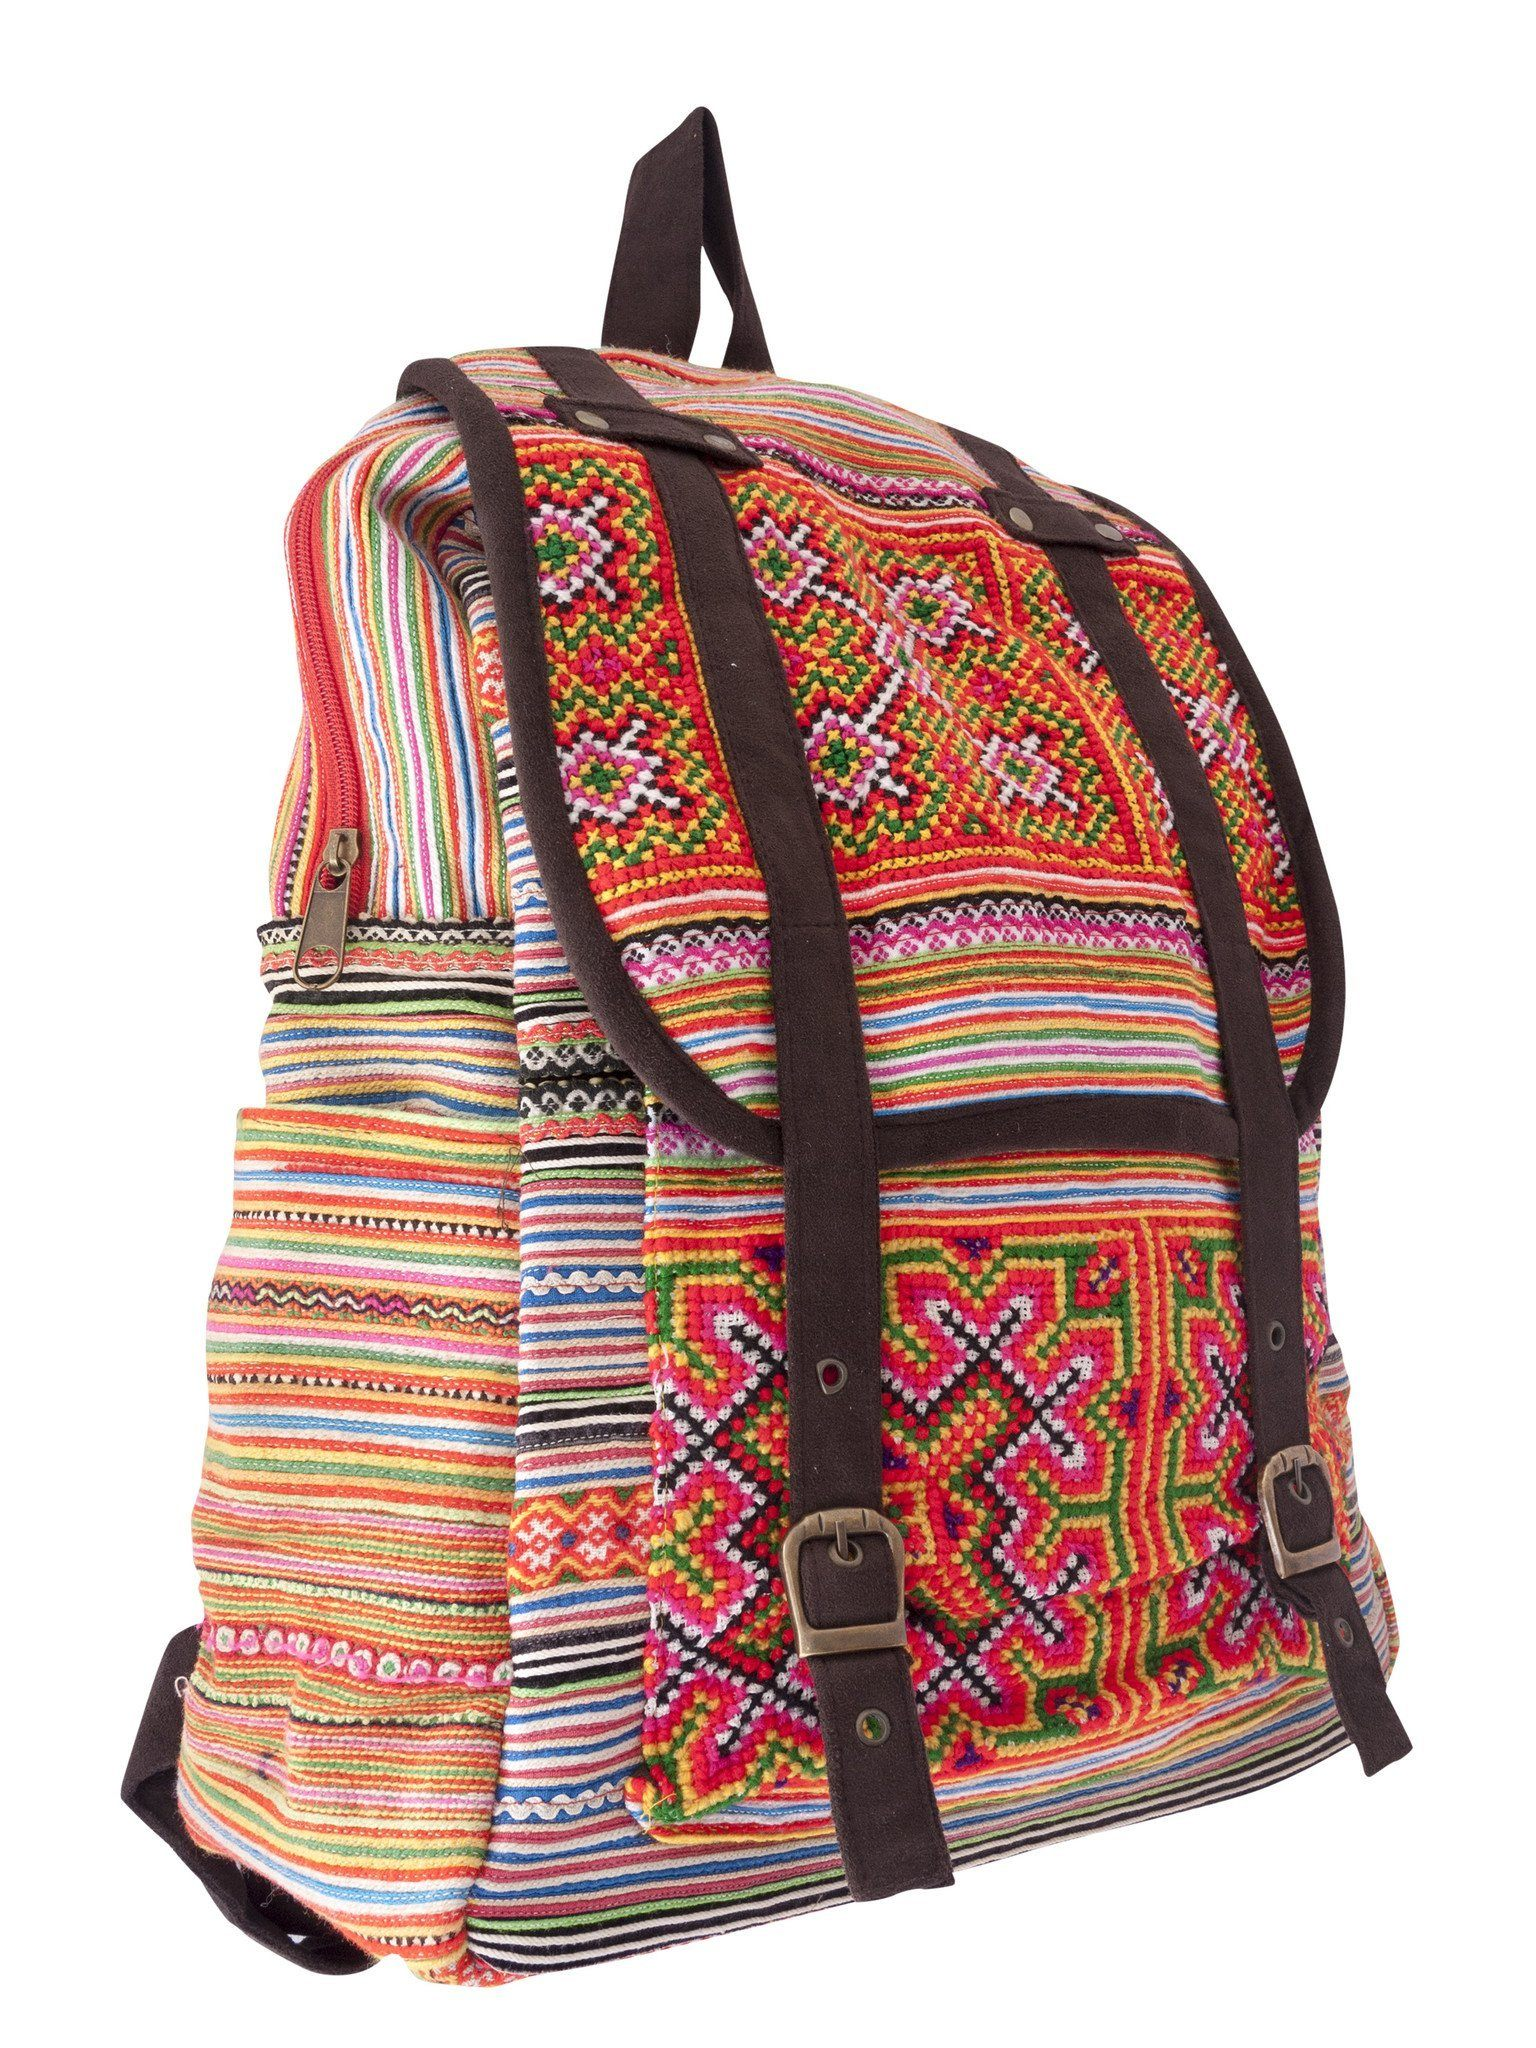 Backpack Hill Tribe Sunset Bag - CCCollections